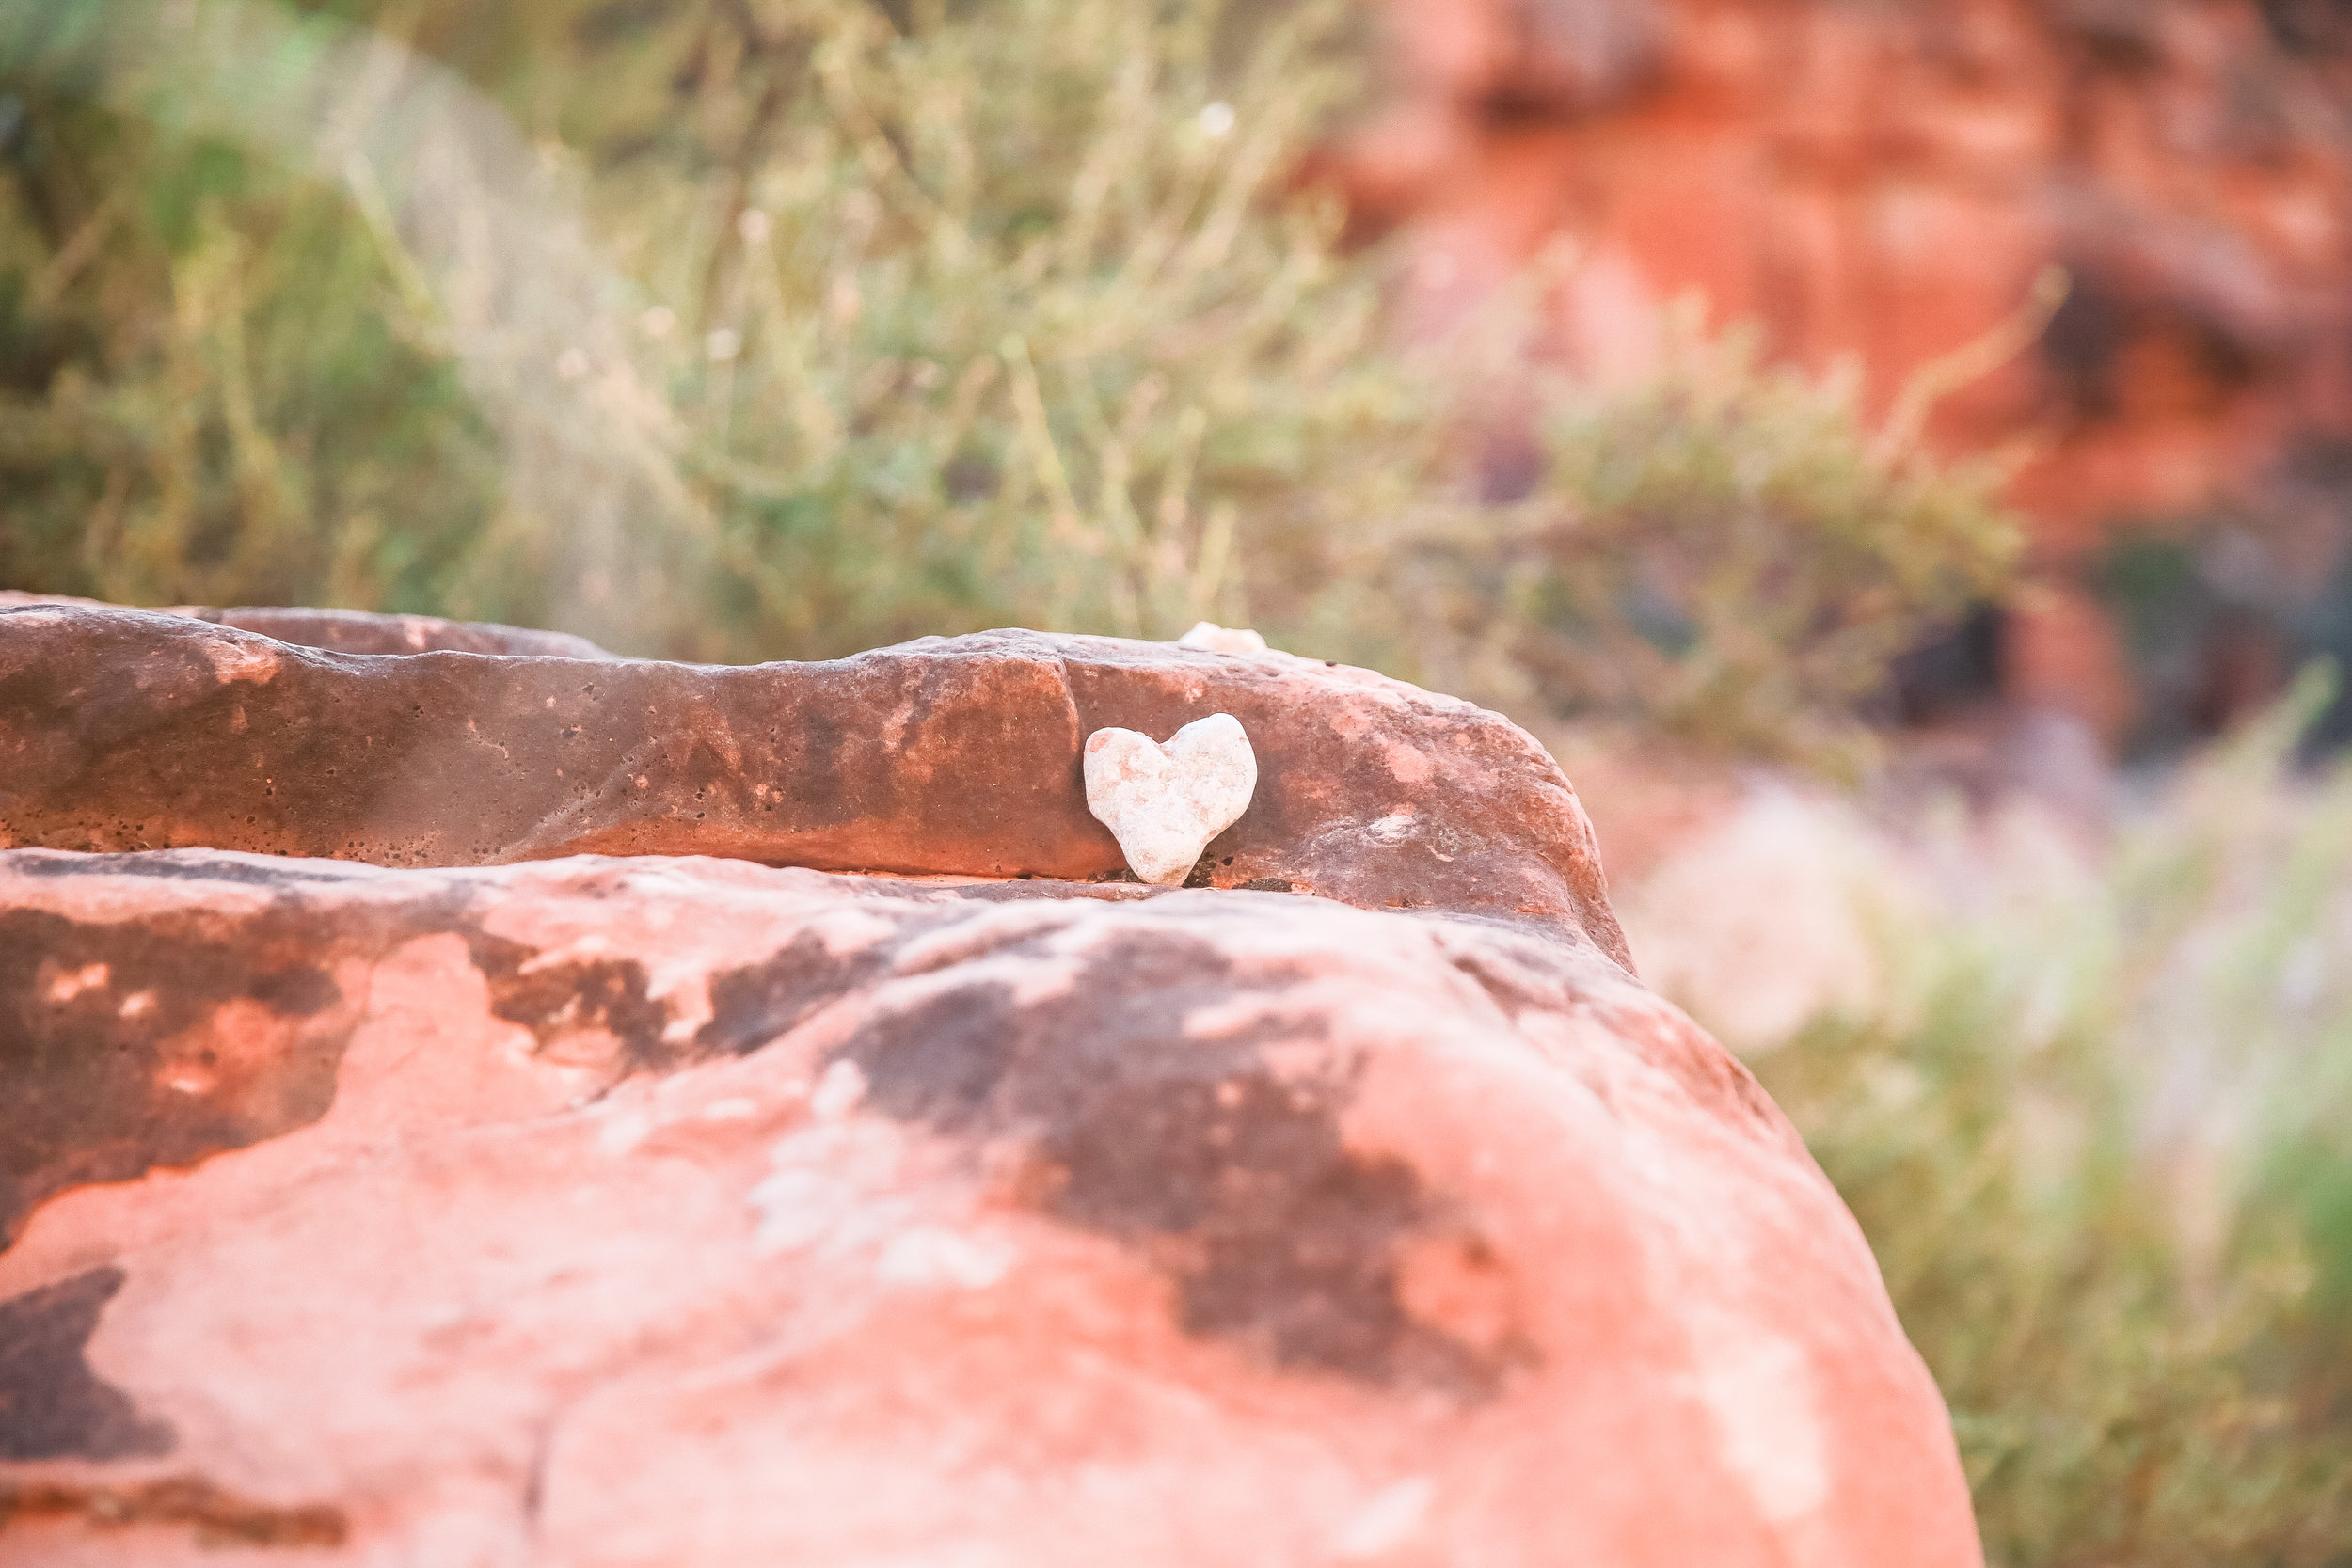 Thank you to the kind soul that placed this rock here for hikers to see on the arduous journey out of the desert. My first instinct was to take it and put it in my pocket since I collect heart shaped rocks, but I felt that would be bad juju to remove anything from such a sacred place...so I left it for the next person to see. #spreadlove